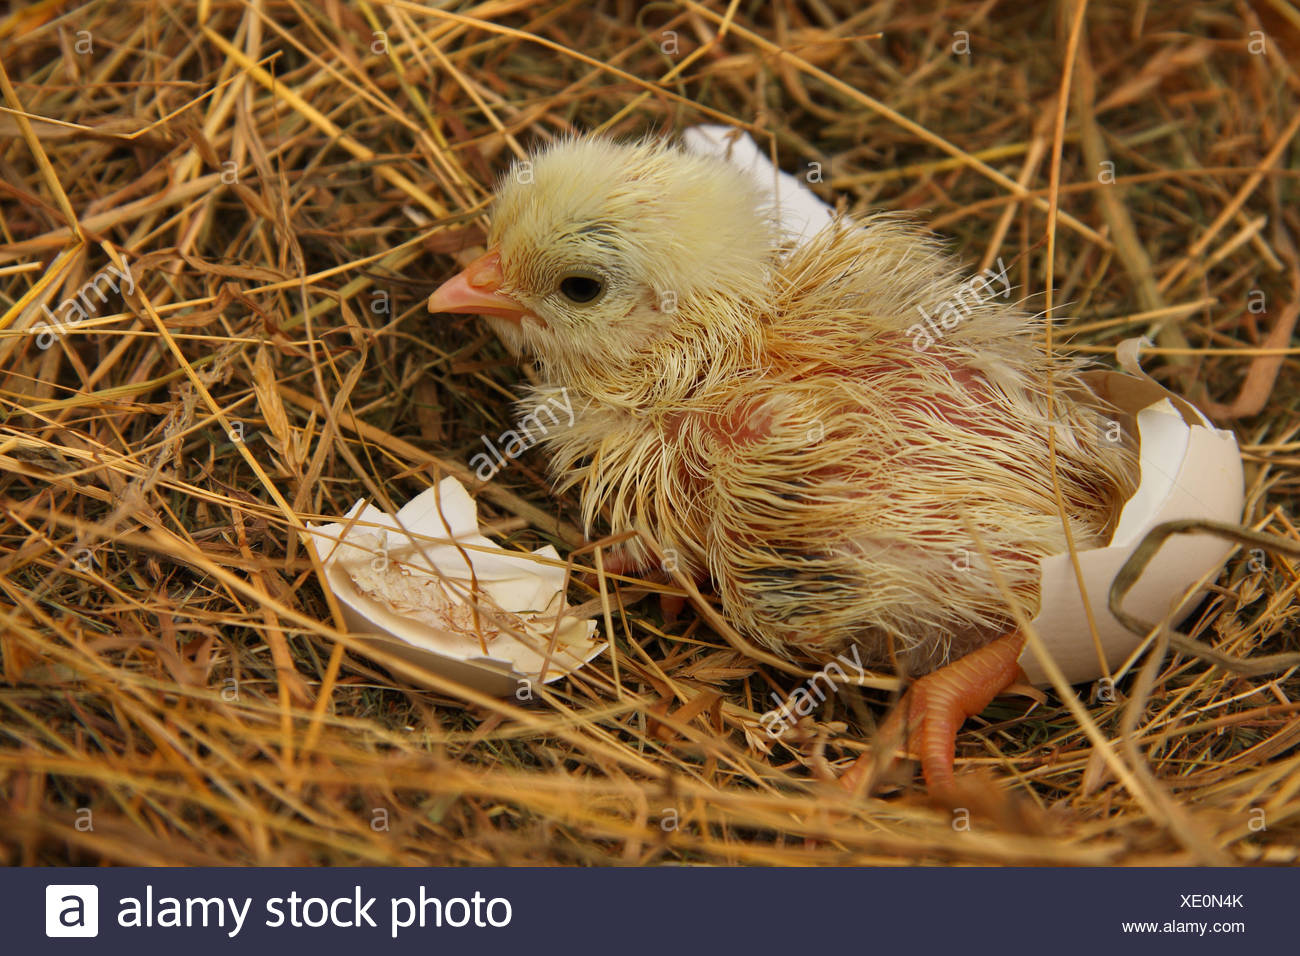 a recently hatched chicken chick in the nest still damp and with